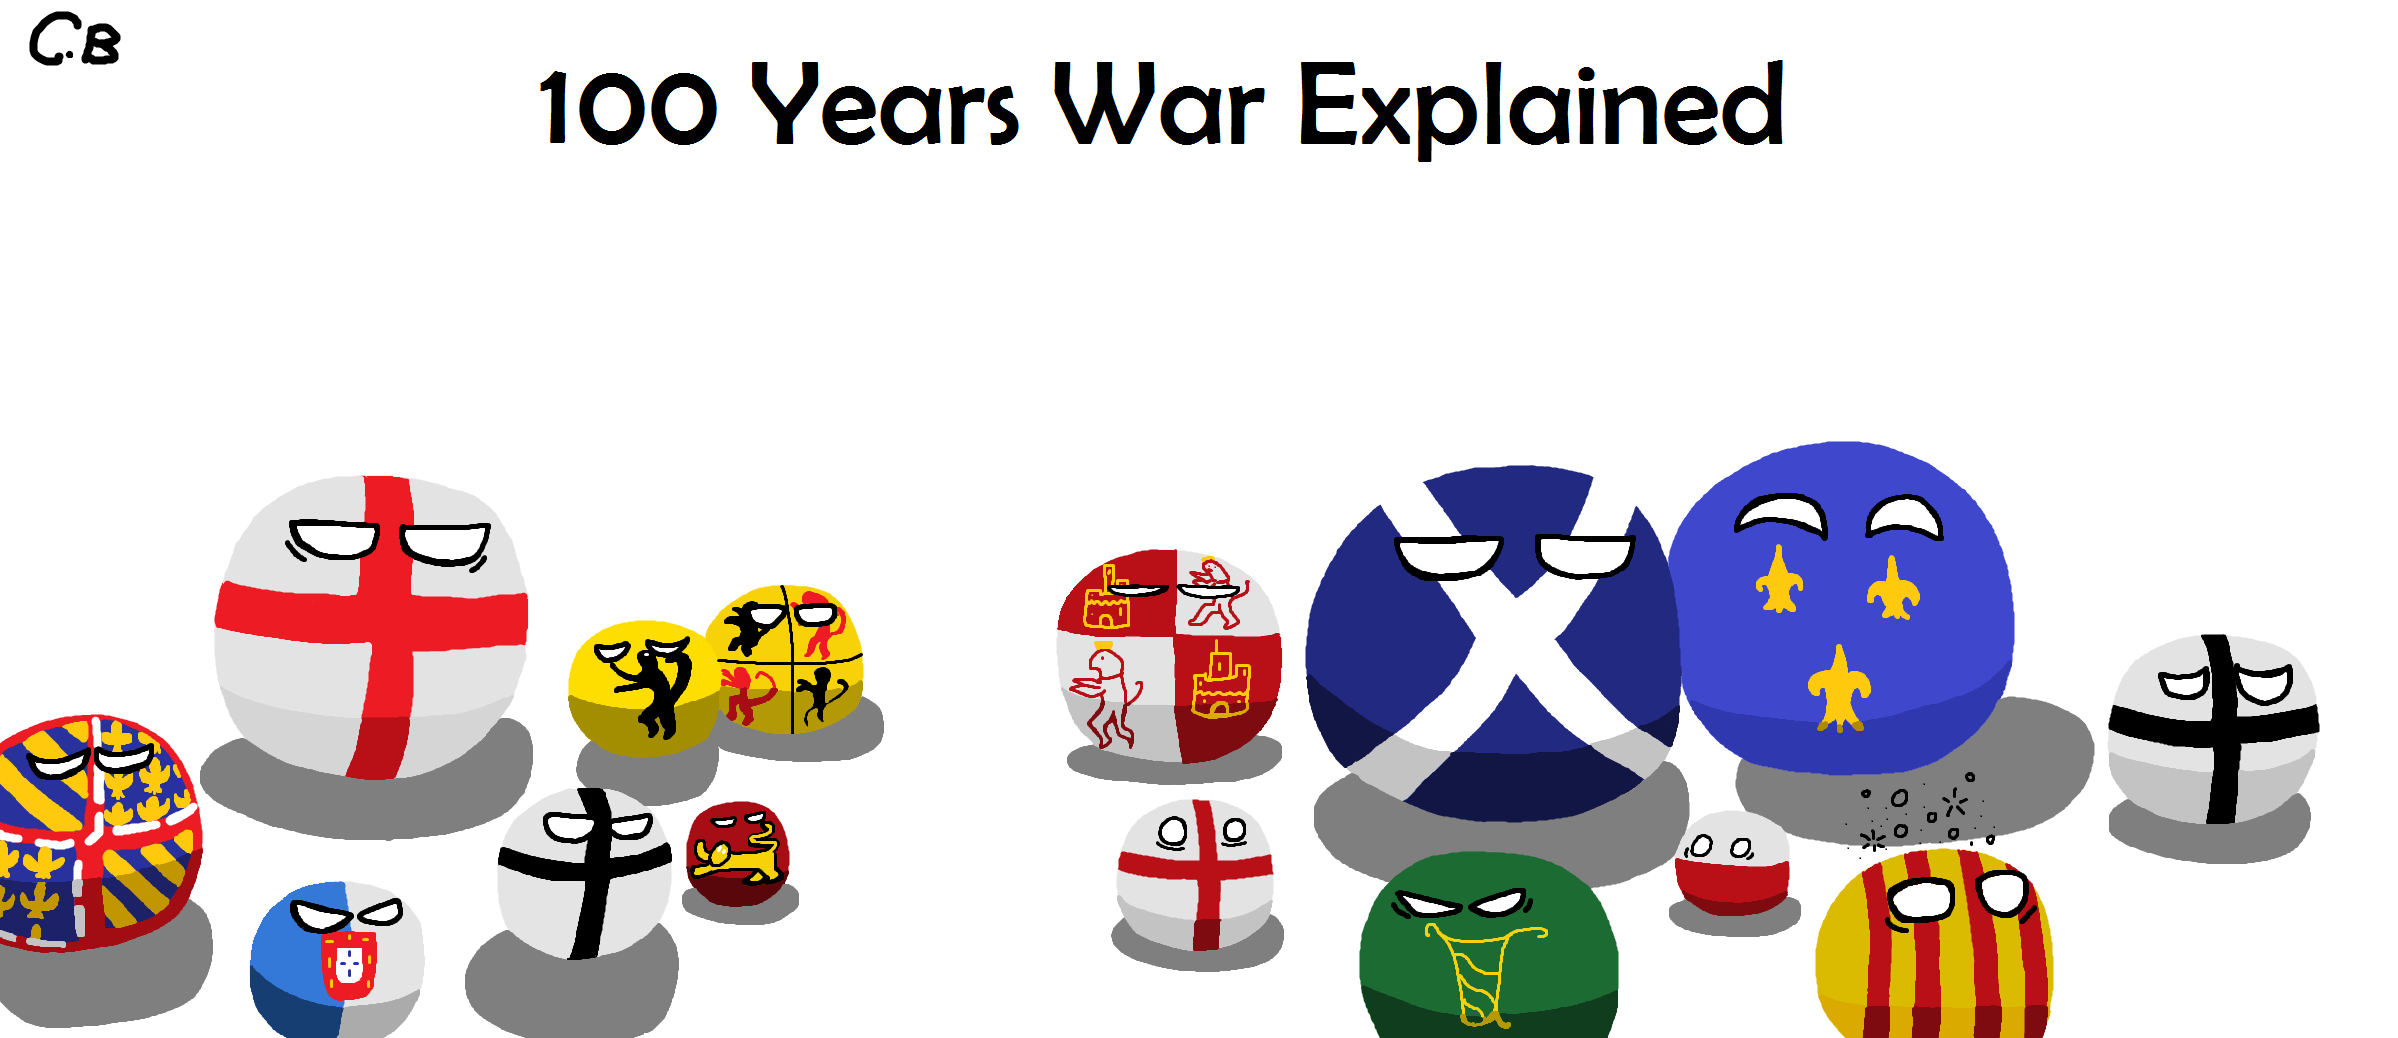 100 years war explained..